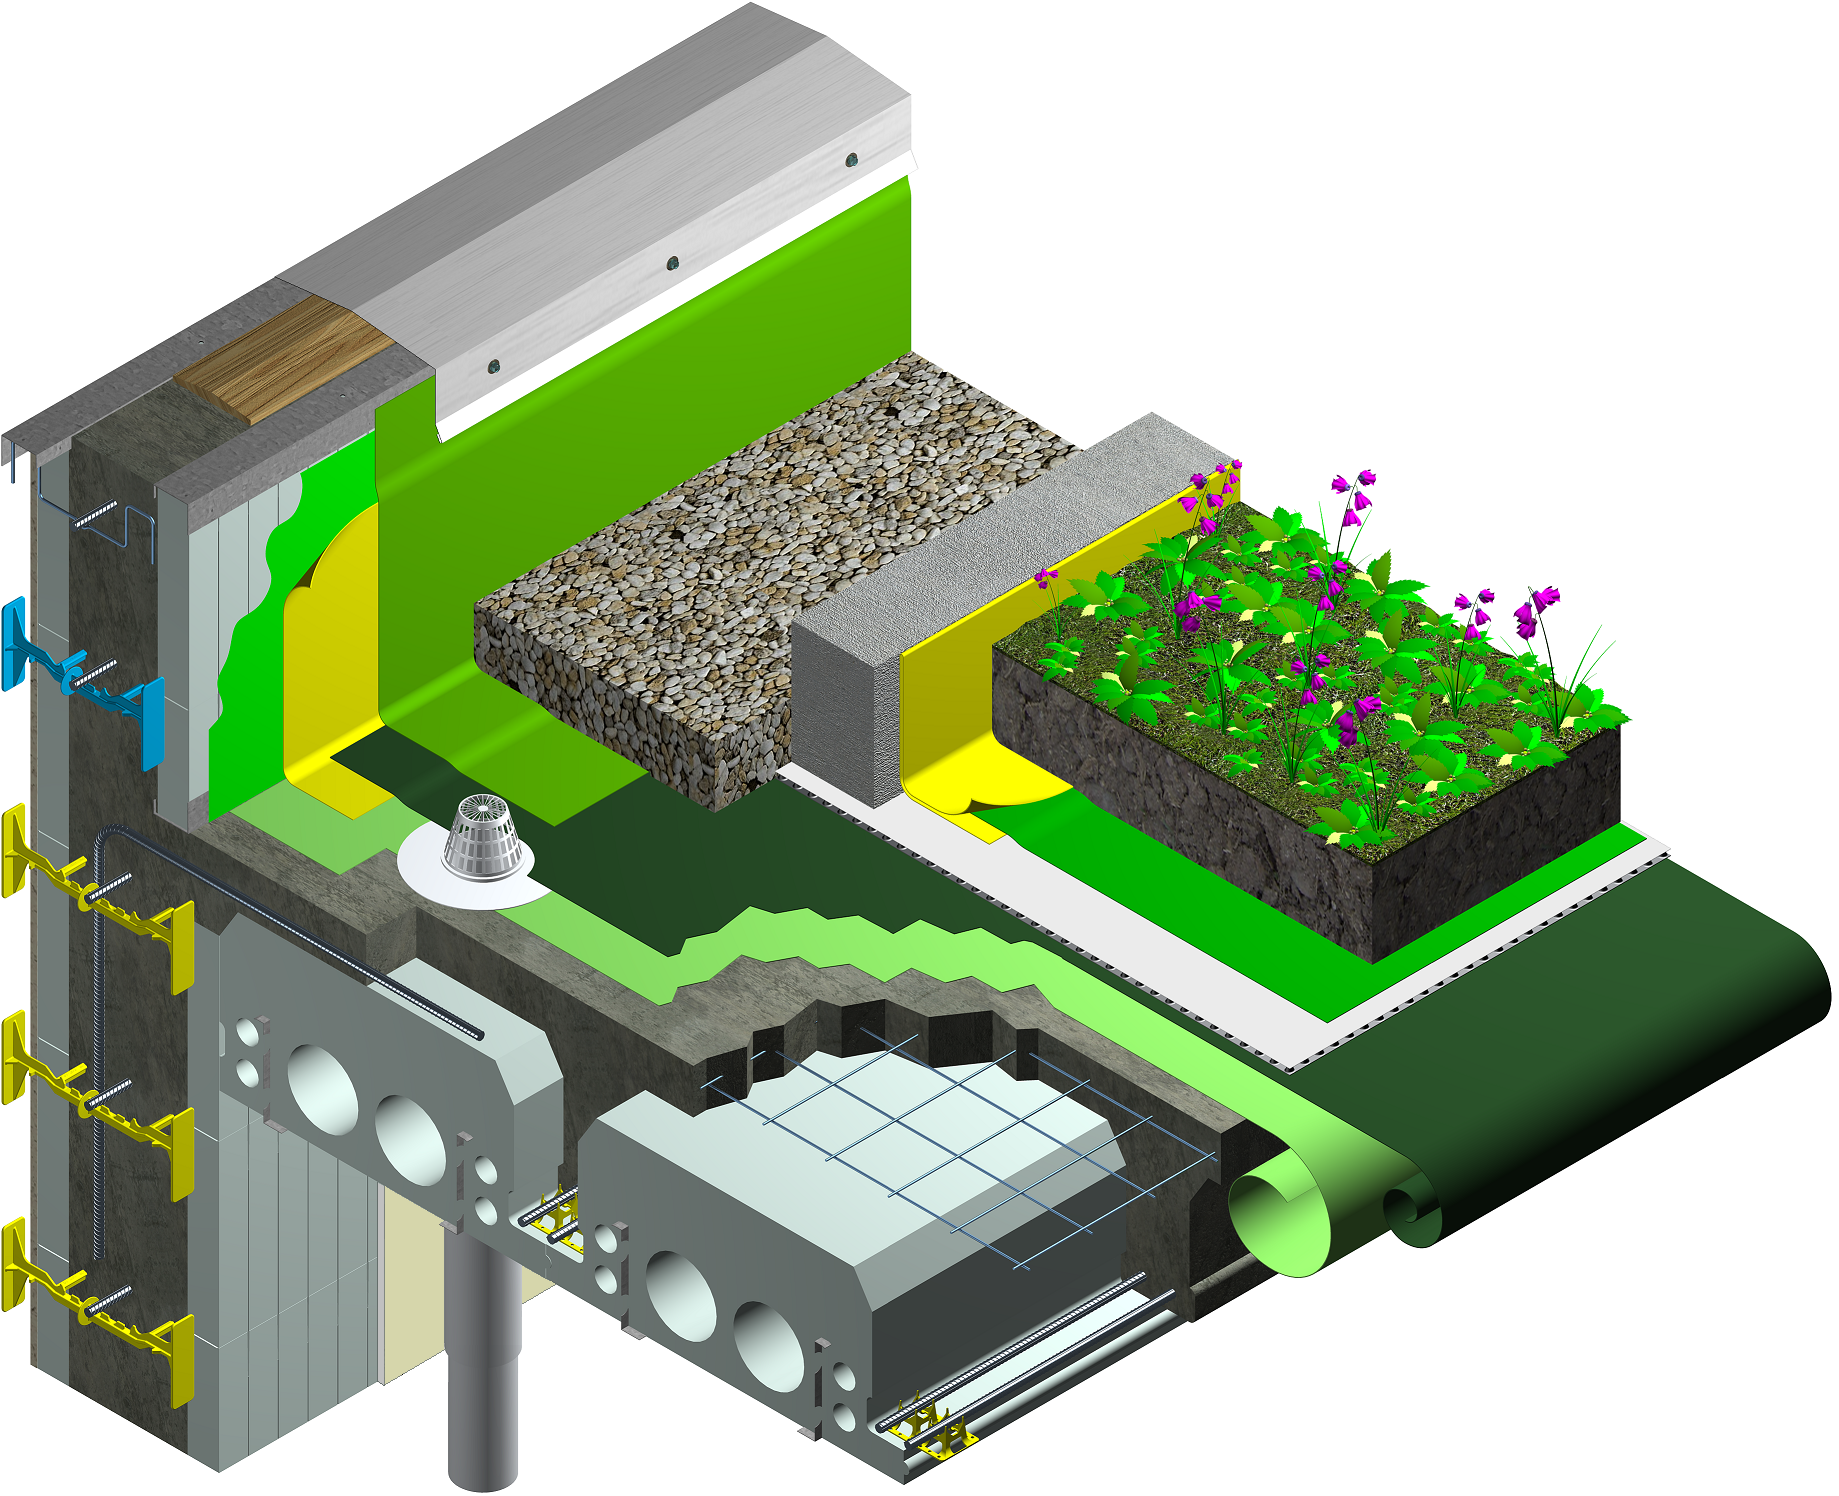 icf_green_roof_no_labels